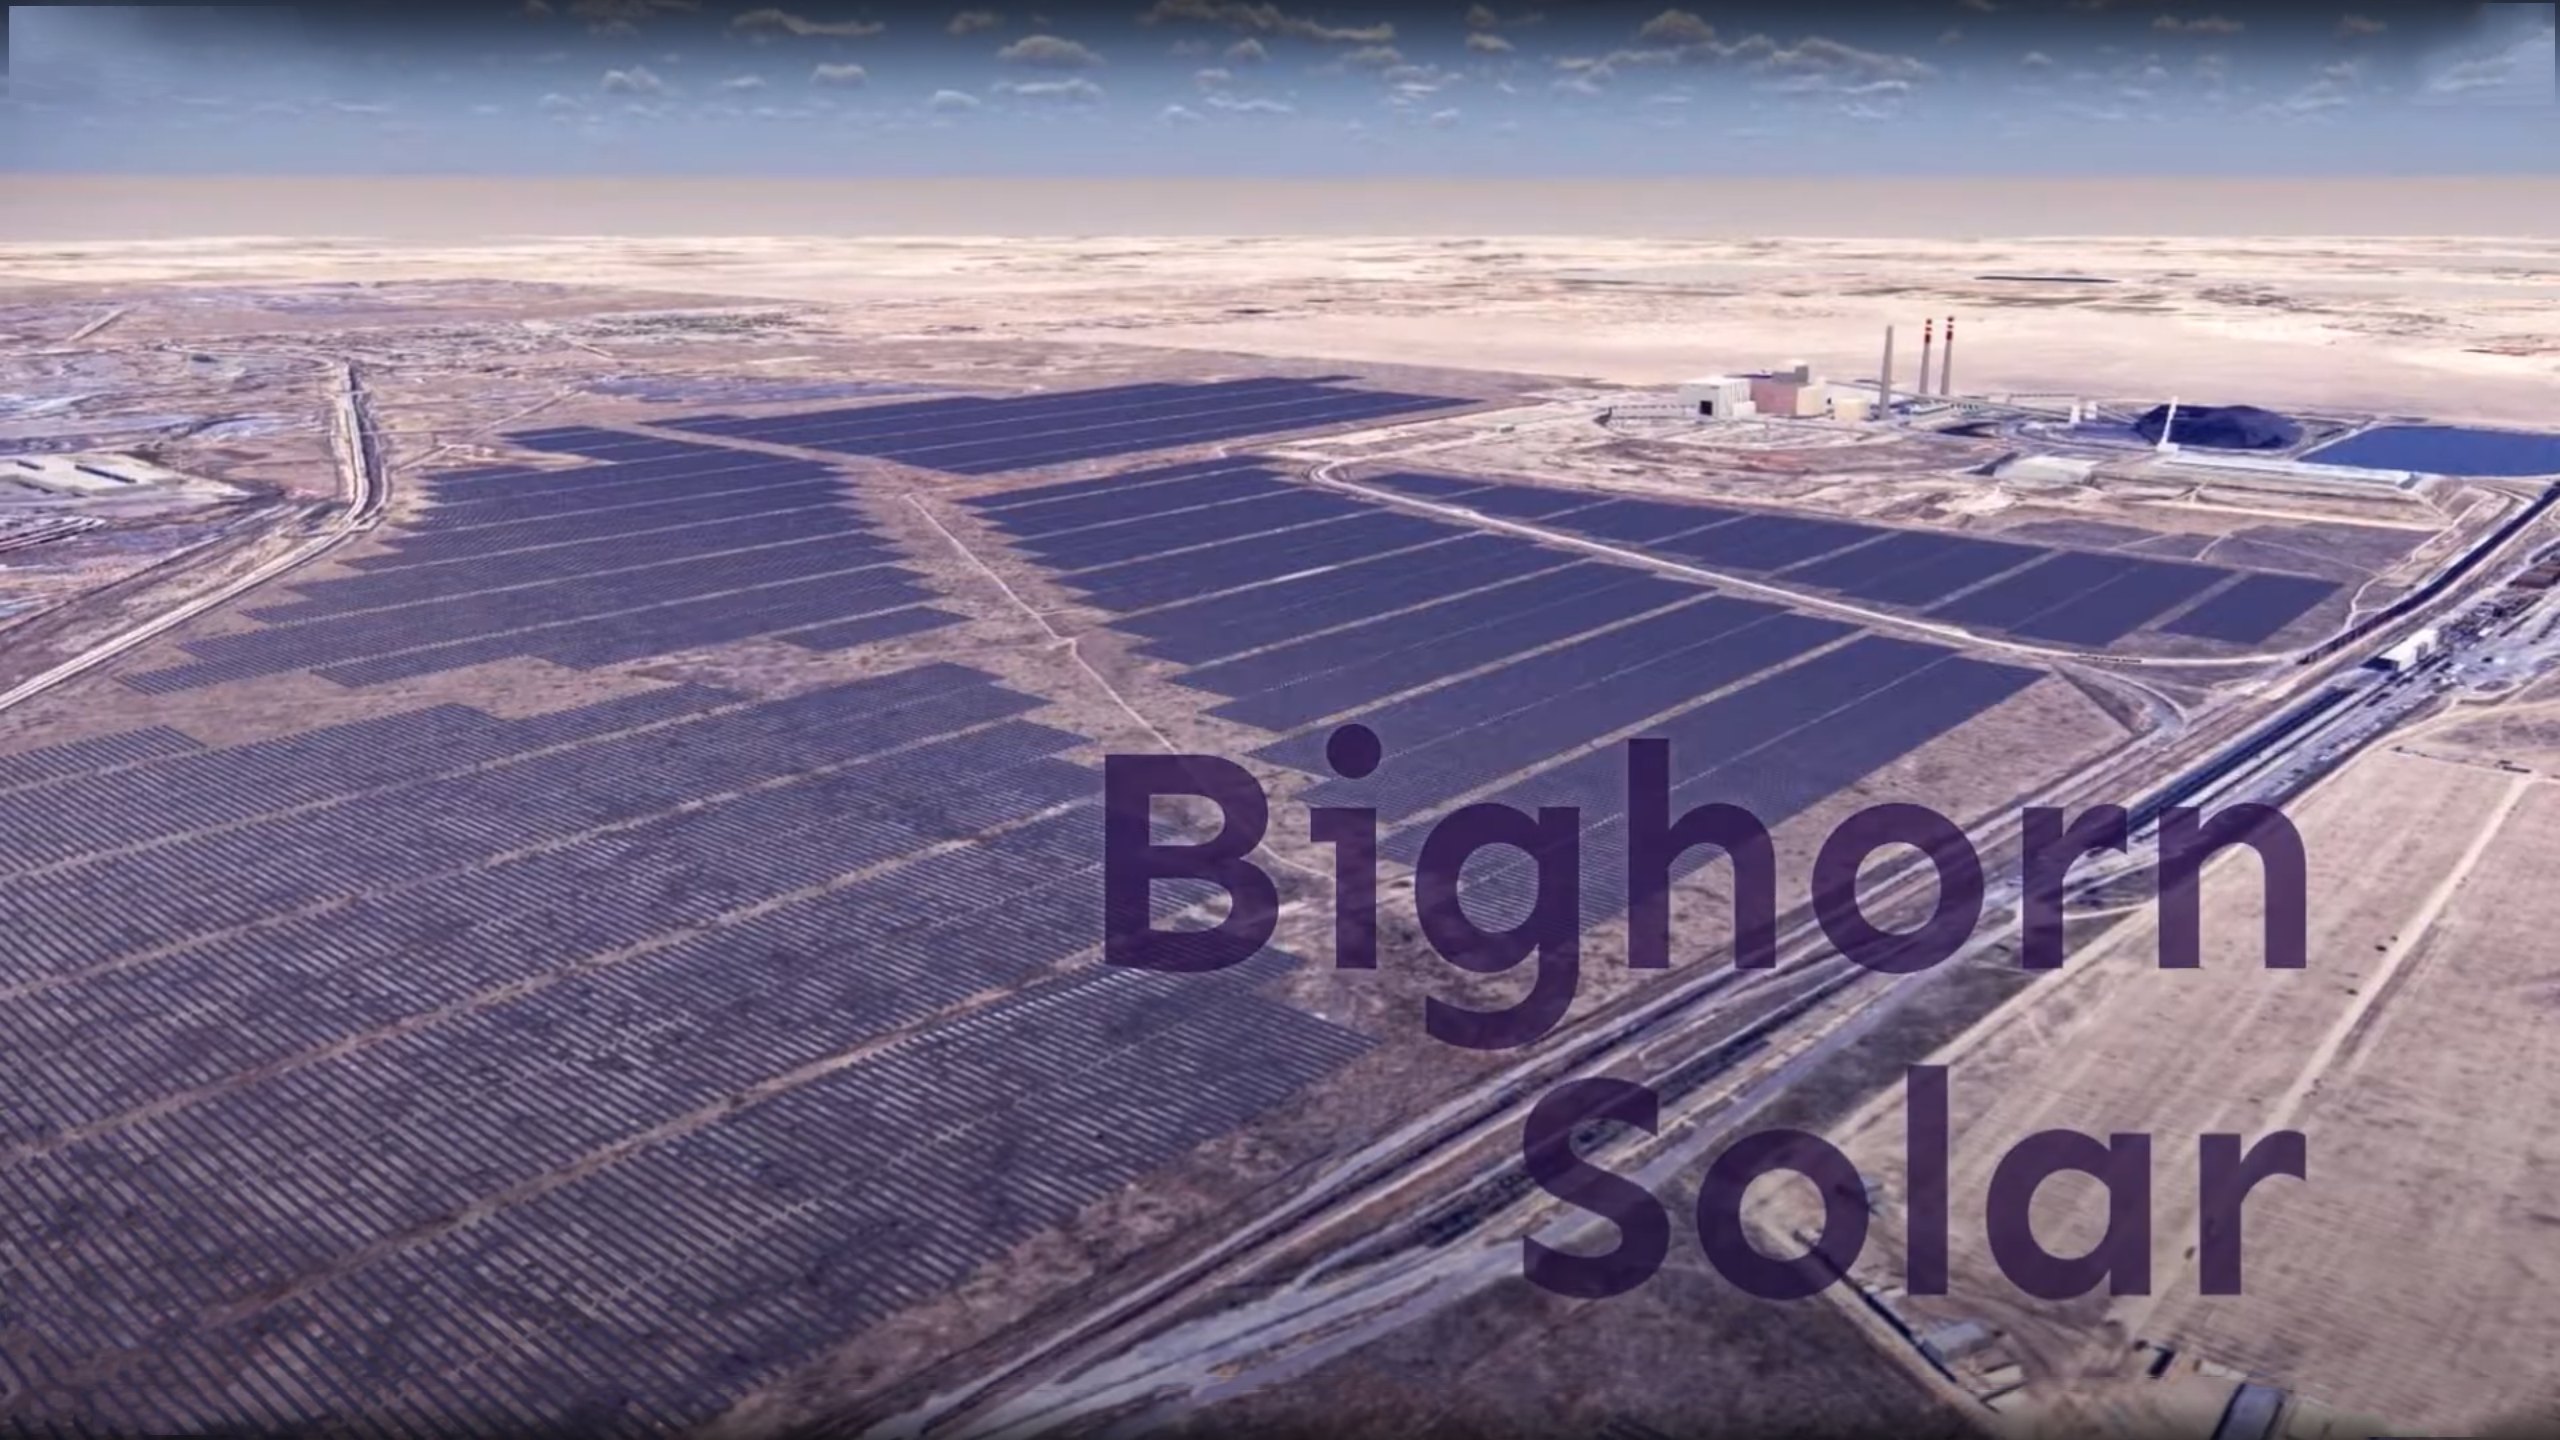 Bighorn-Solar-in-Colorado